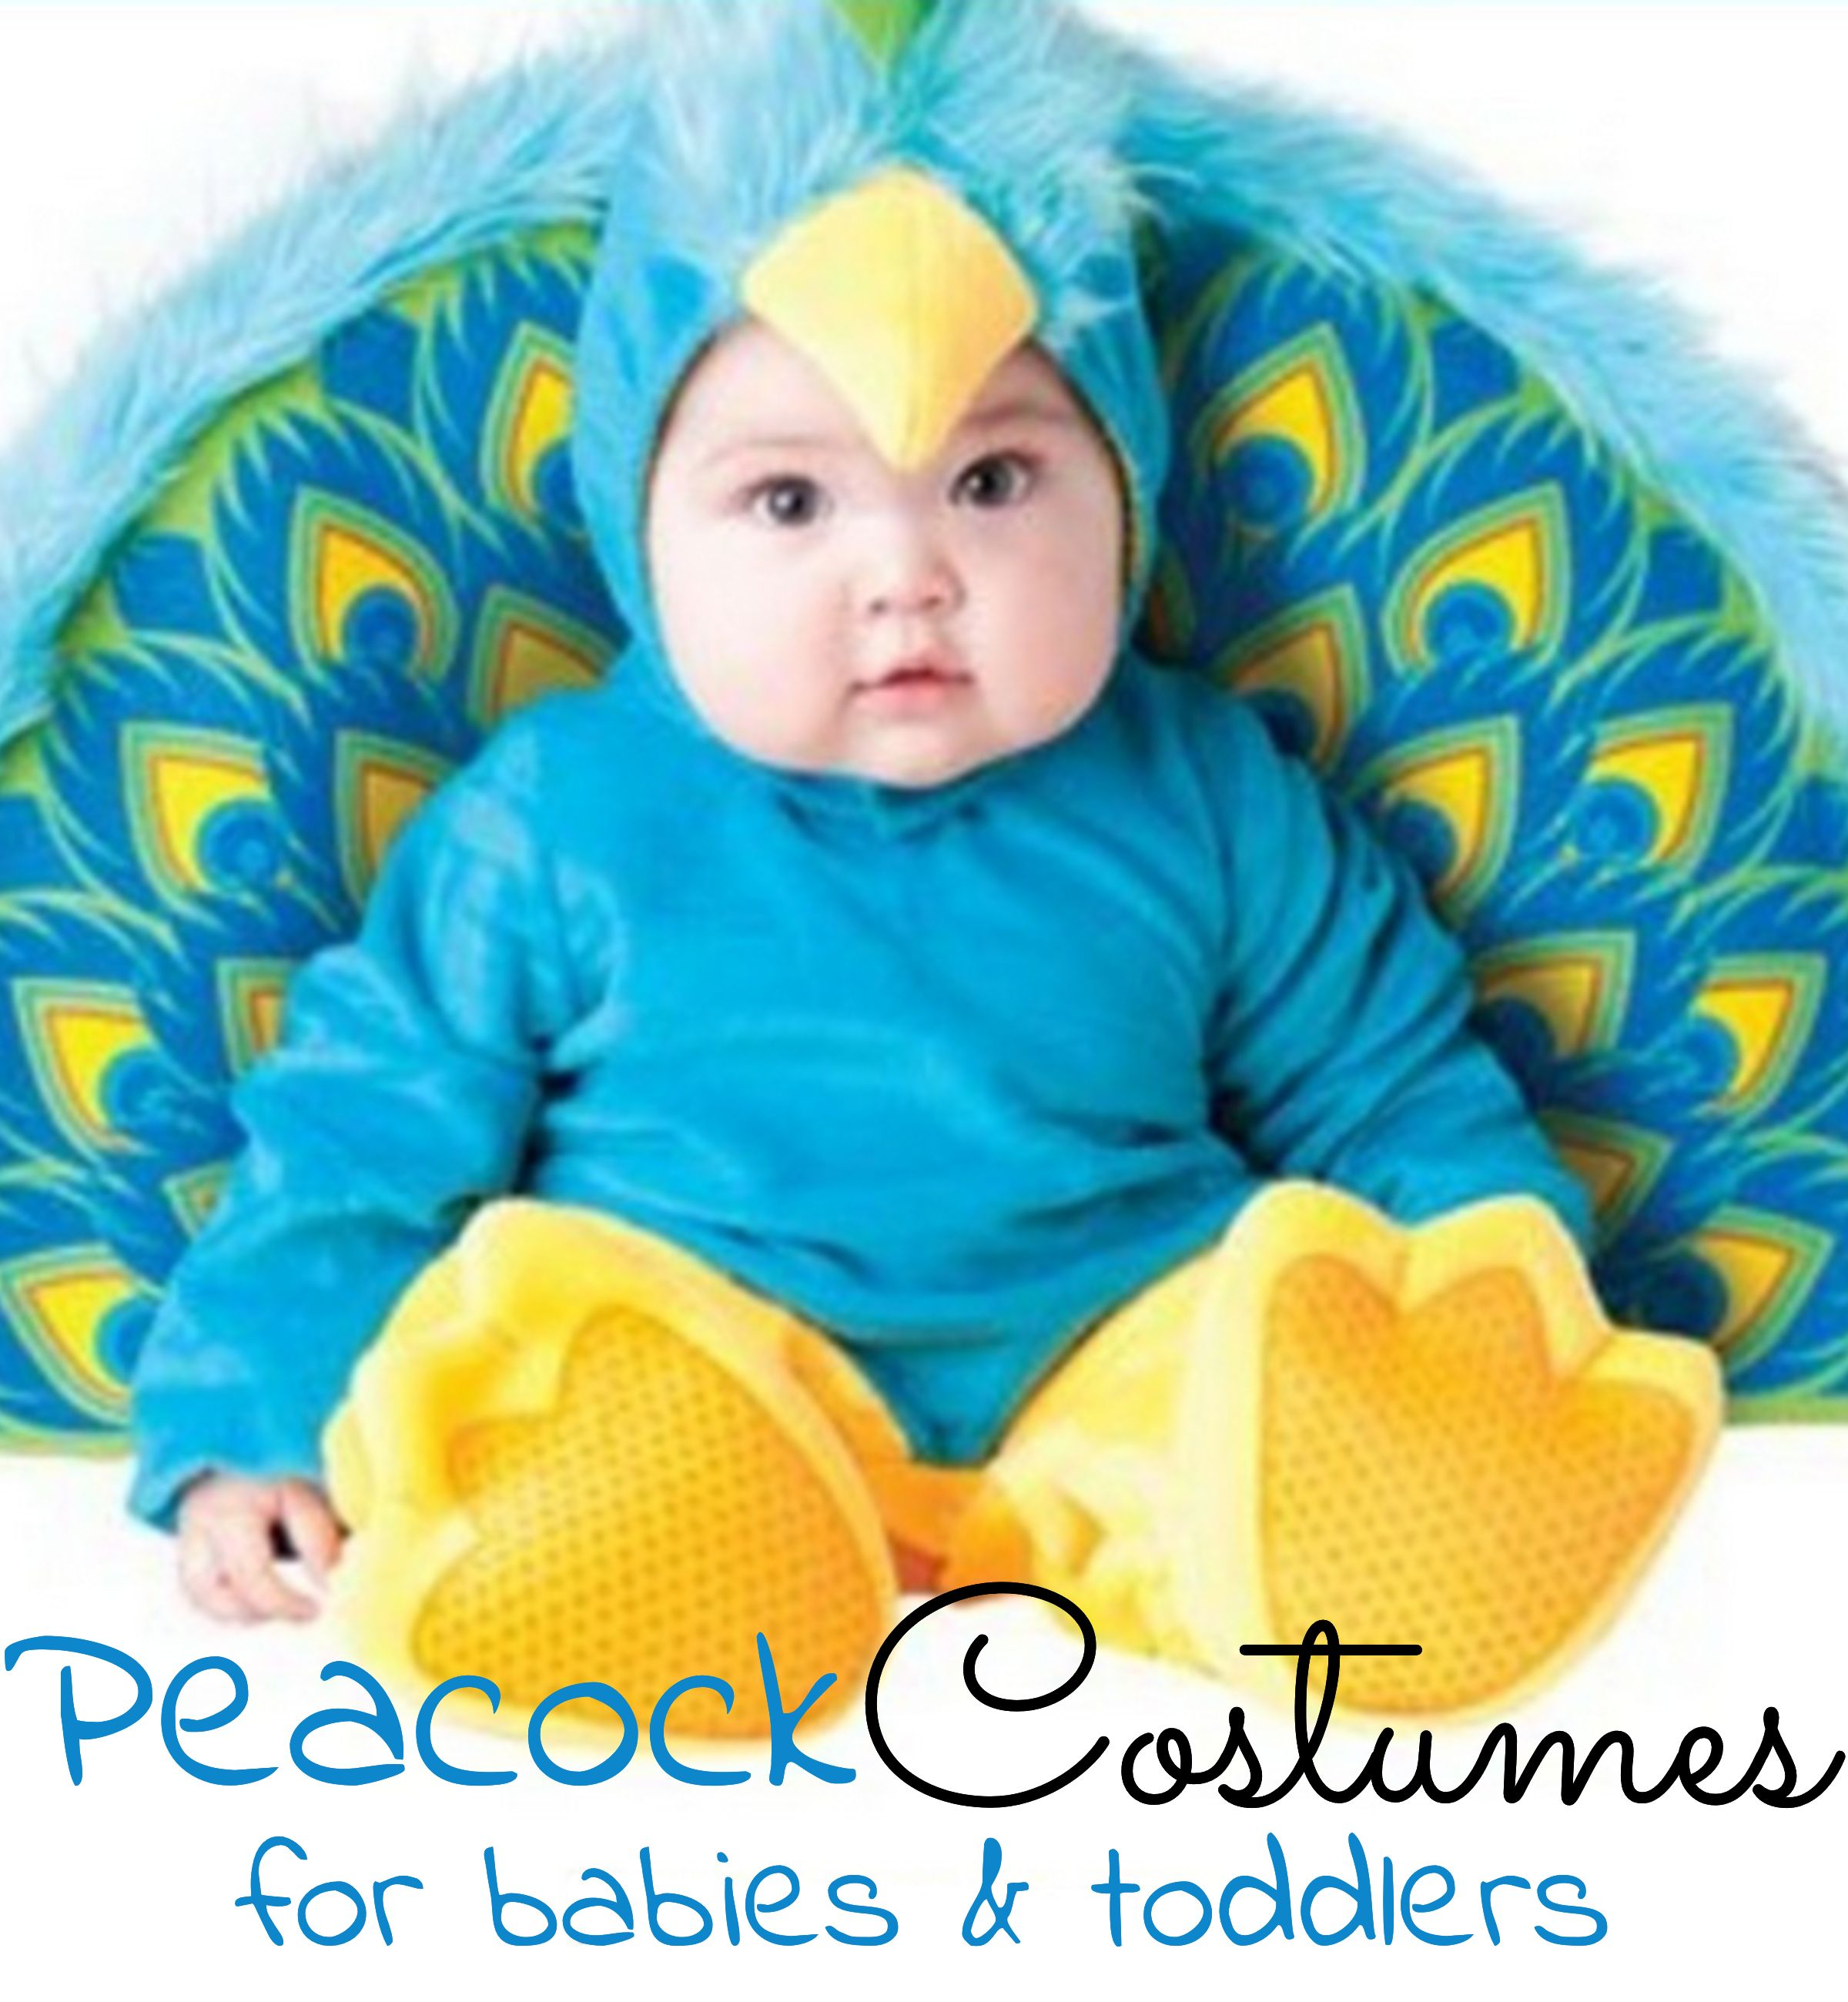 Super cute PEACOCK costumes for toddlers, babies, little girls and tweens - great Halloween costume ideas!